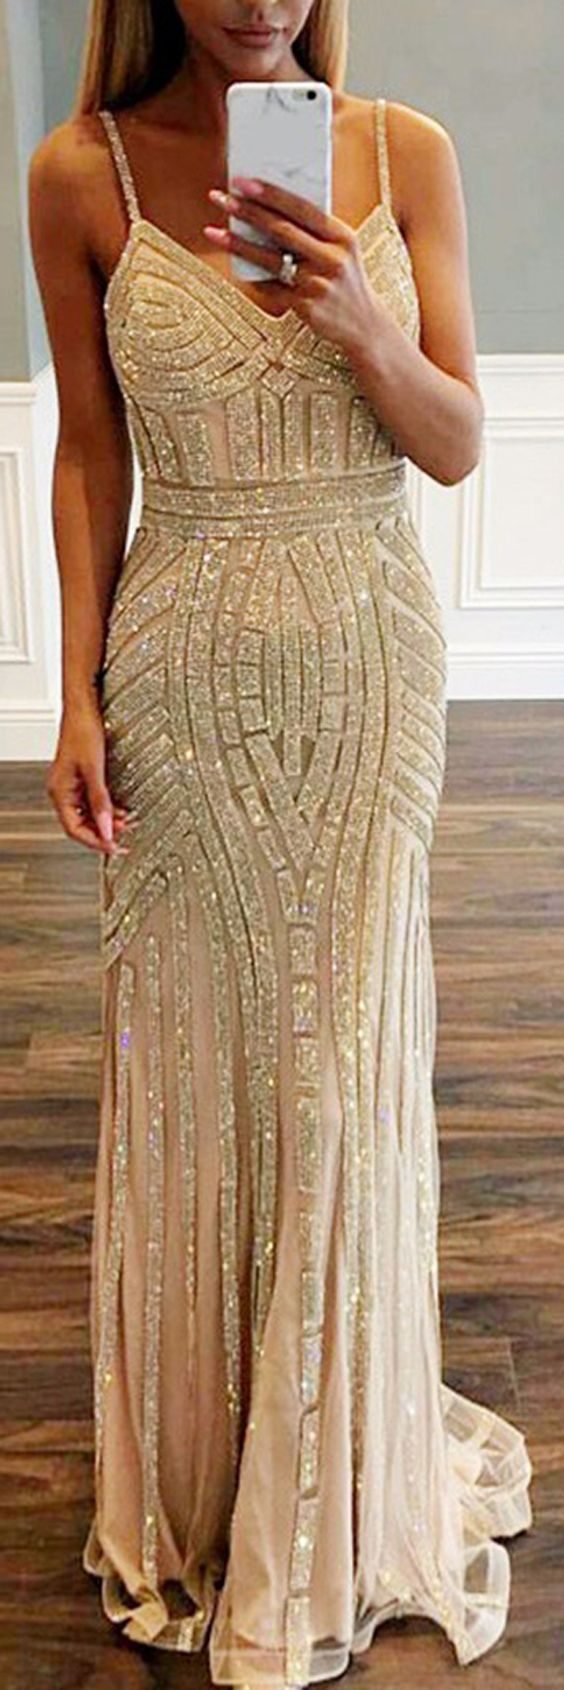 Mermaid spaghetti straps champagne tulle prom dress with beading